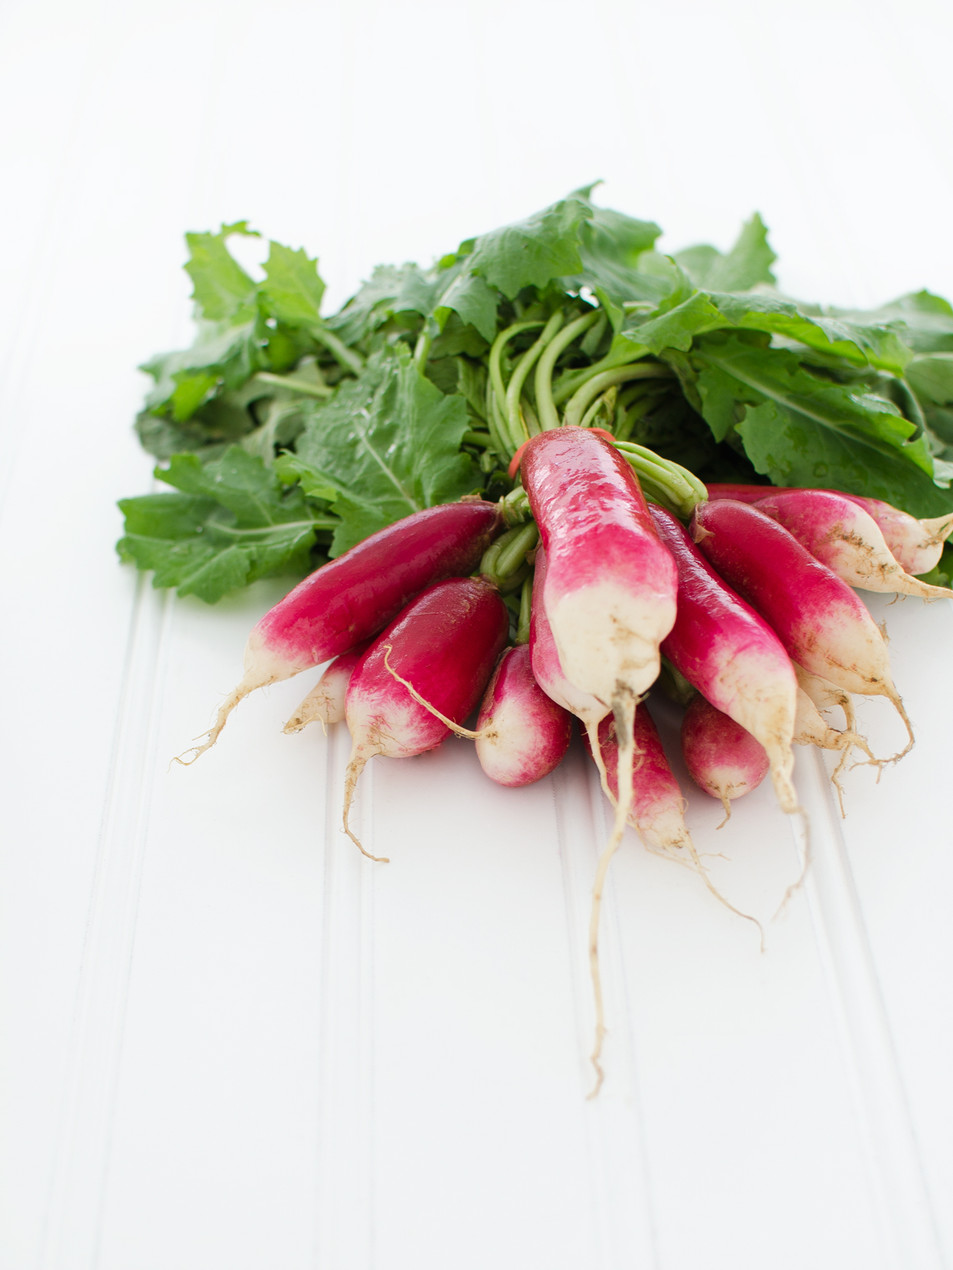 organic radishes-food and product photography -washington dc